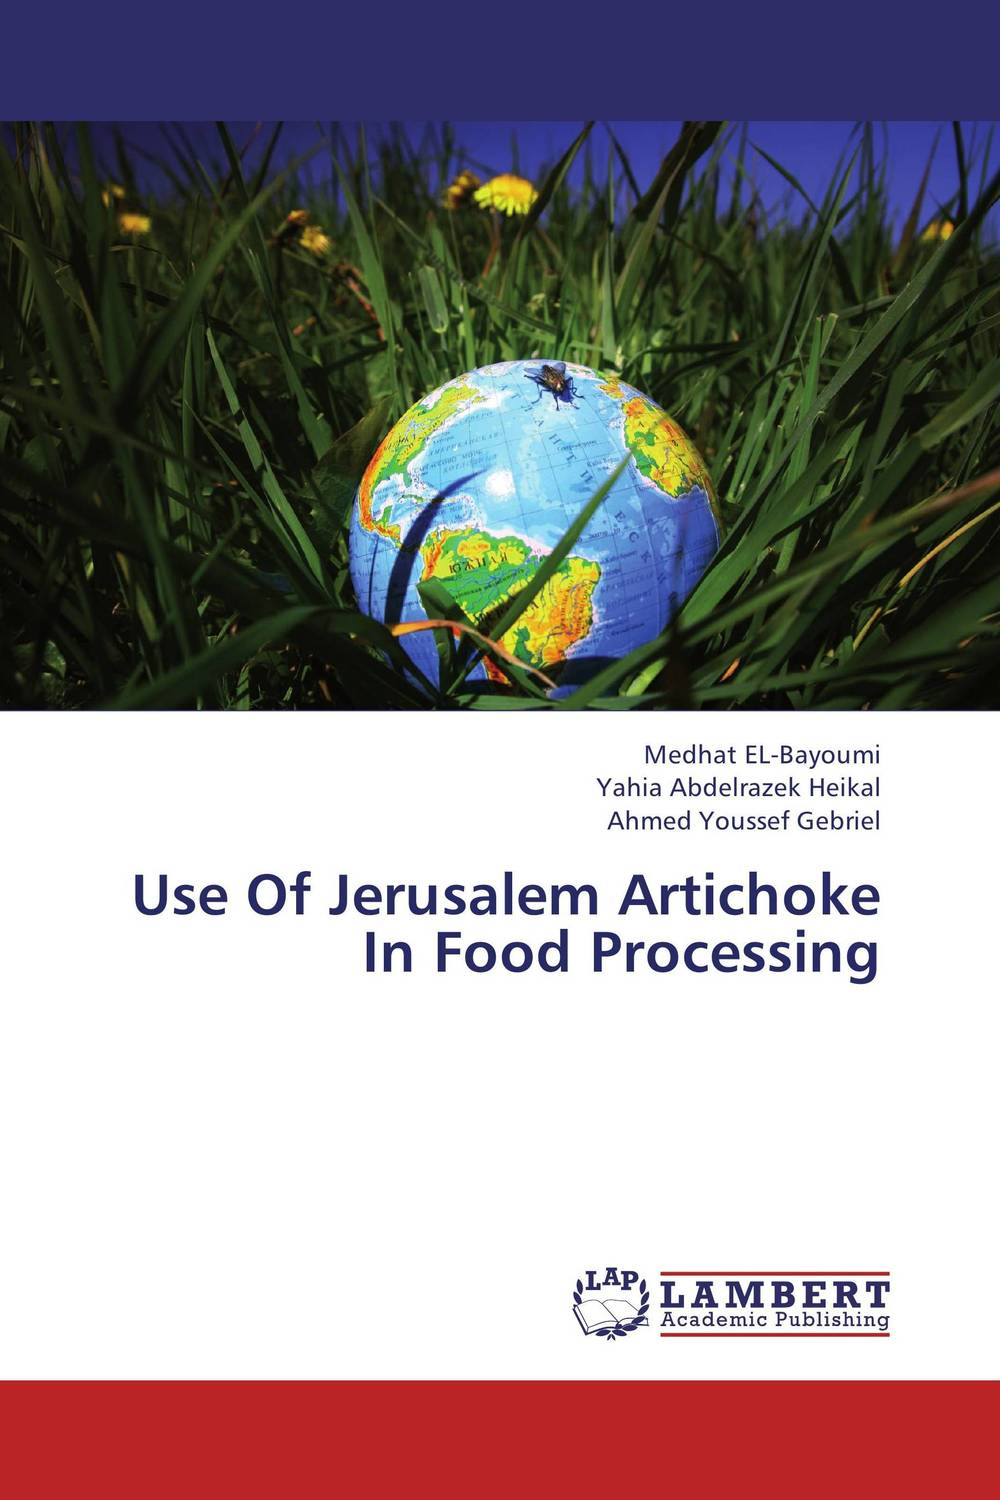 Use Of Jerusalem Artichoke In Food Processing thermo operated water valves can be used in food processing equipments biomass boilers and hydraulic systems